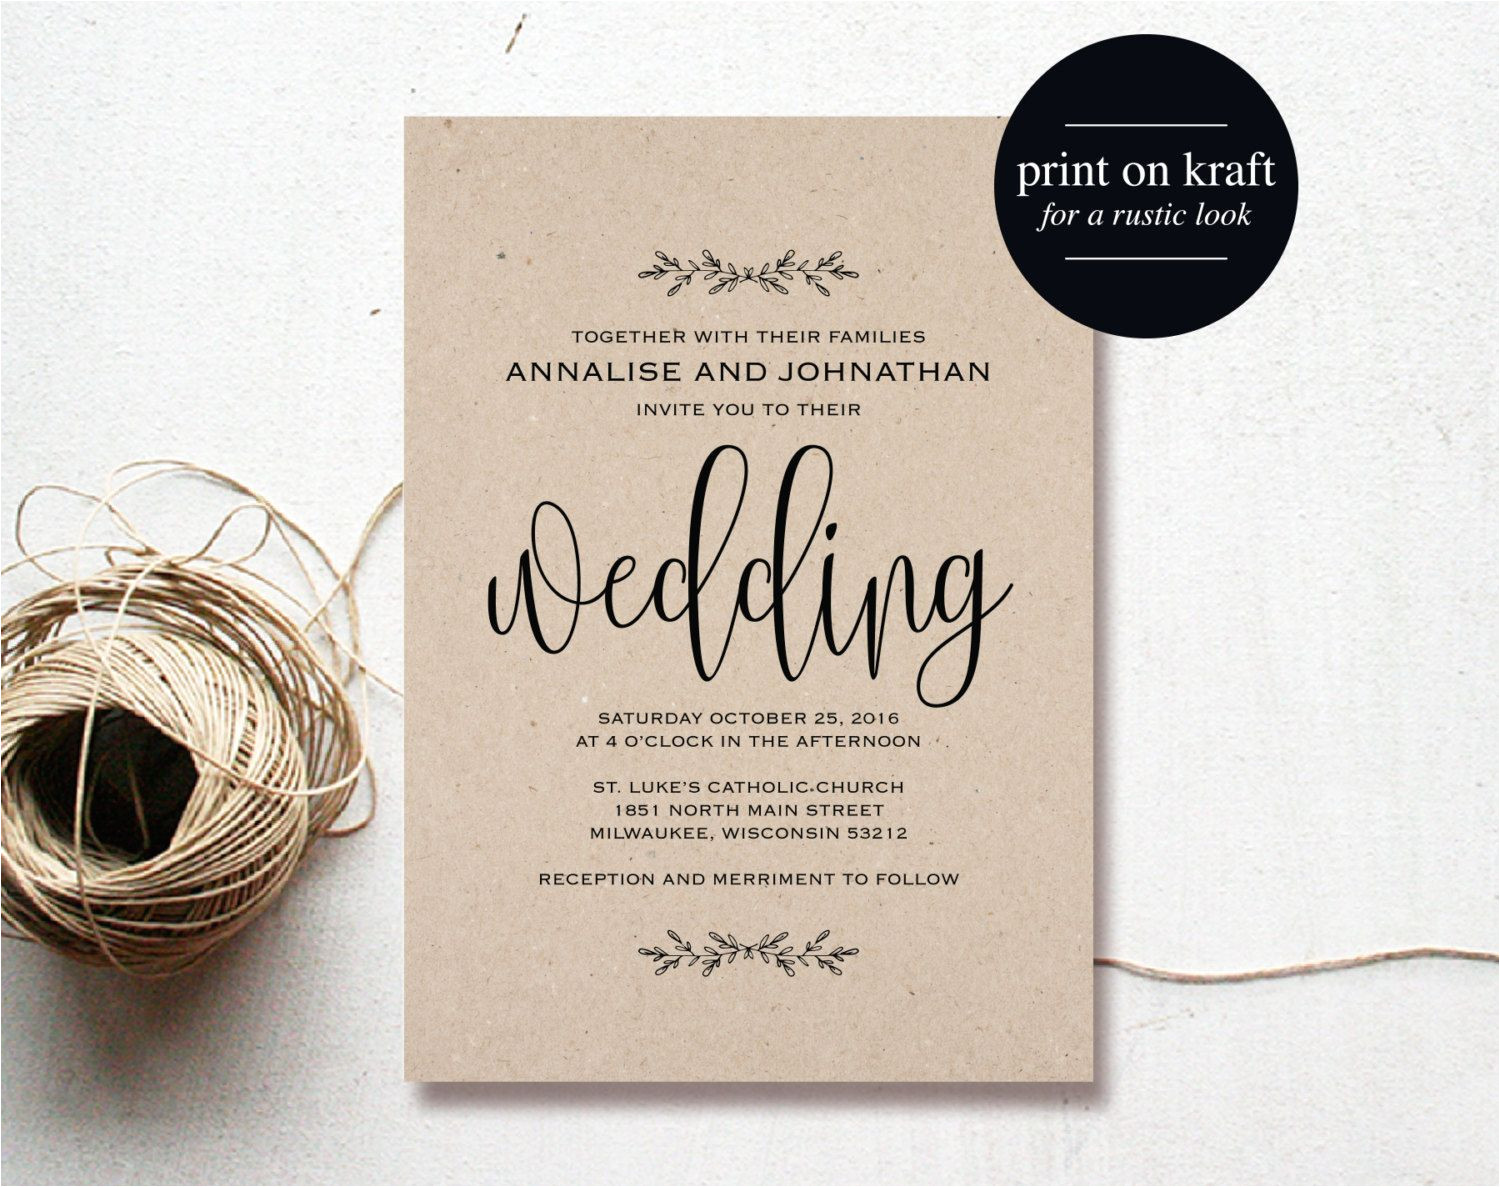 High Resolution Wedding Invitation Template Purchase This Listing to Receive 5 High Resolution Wedding